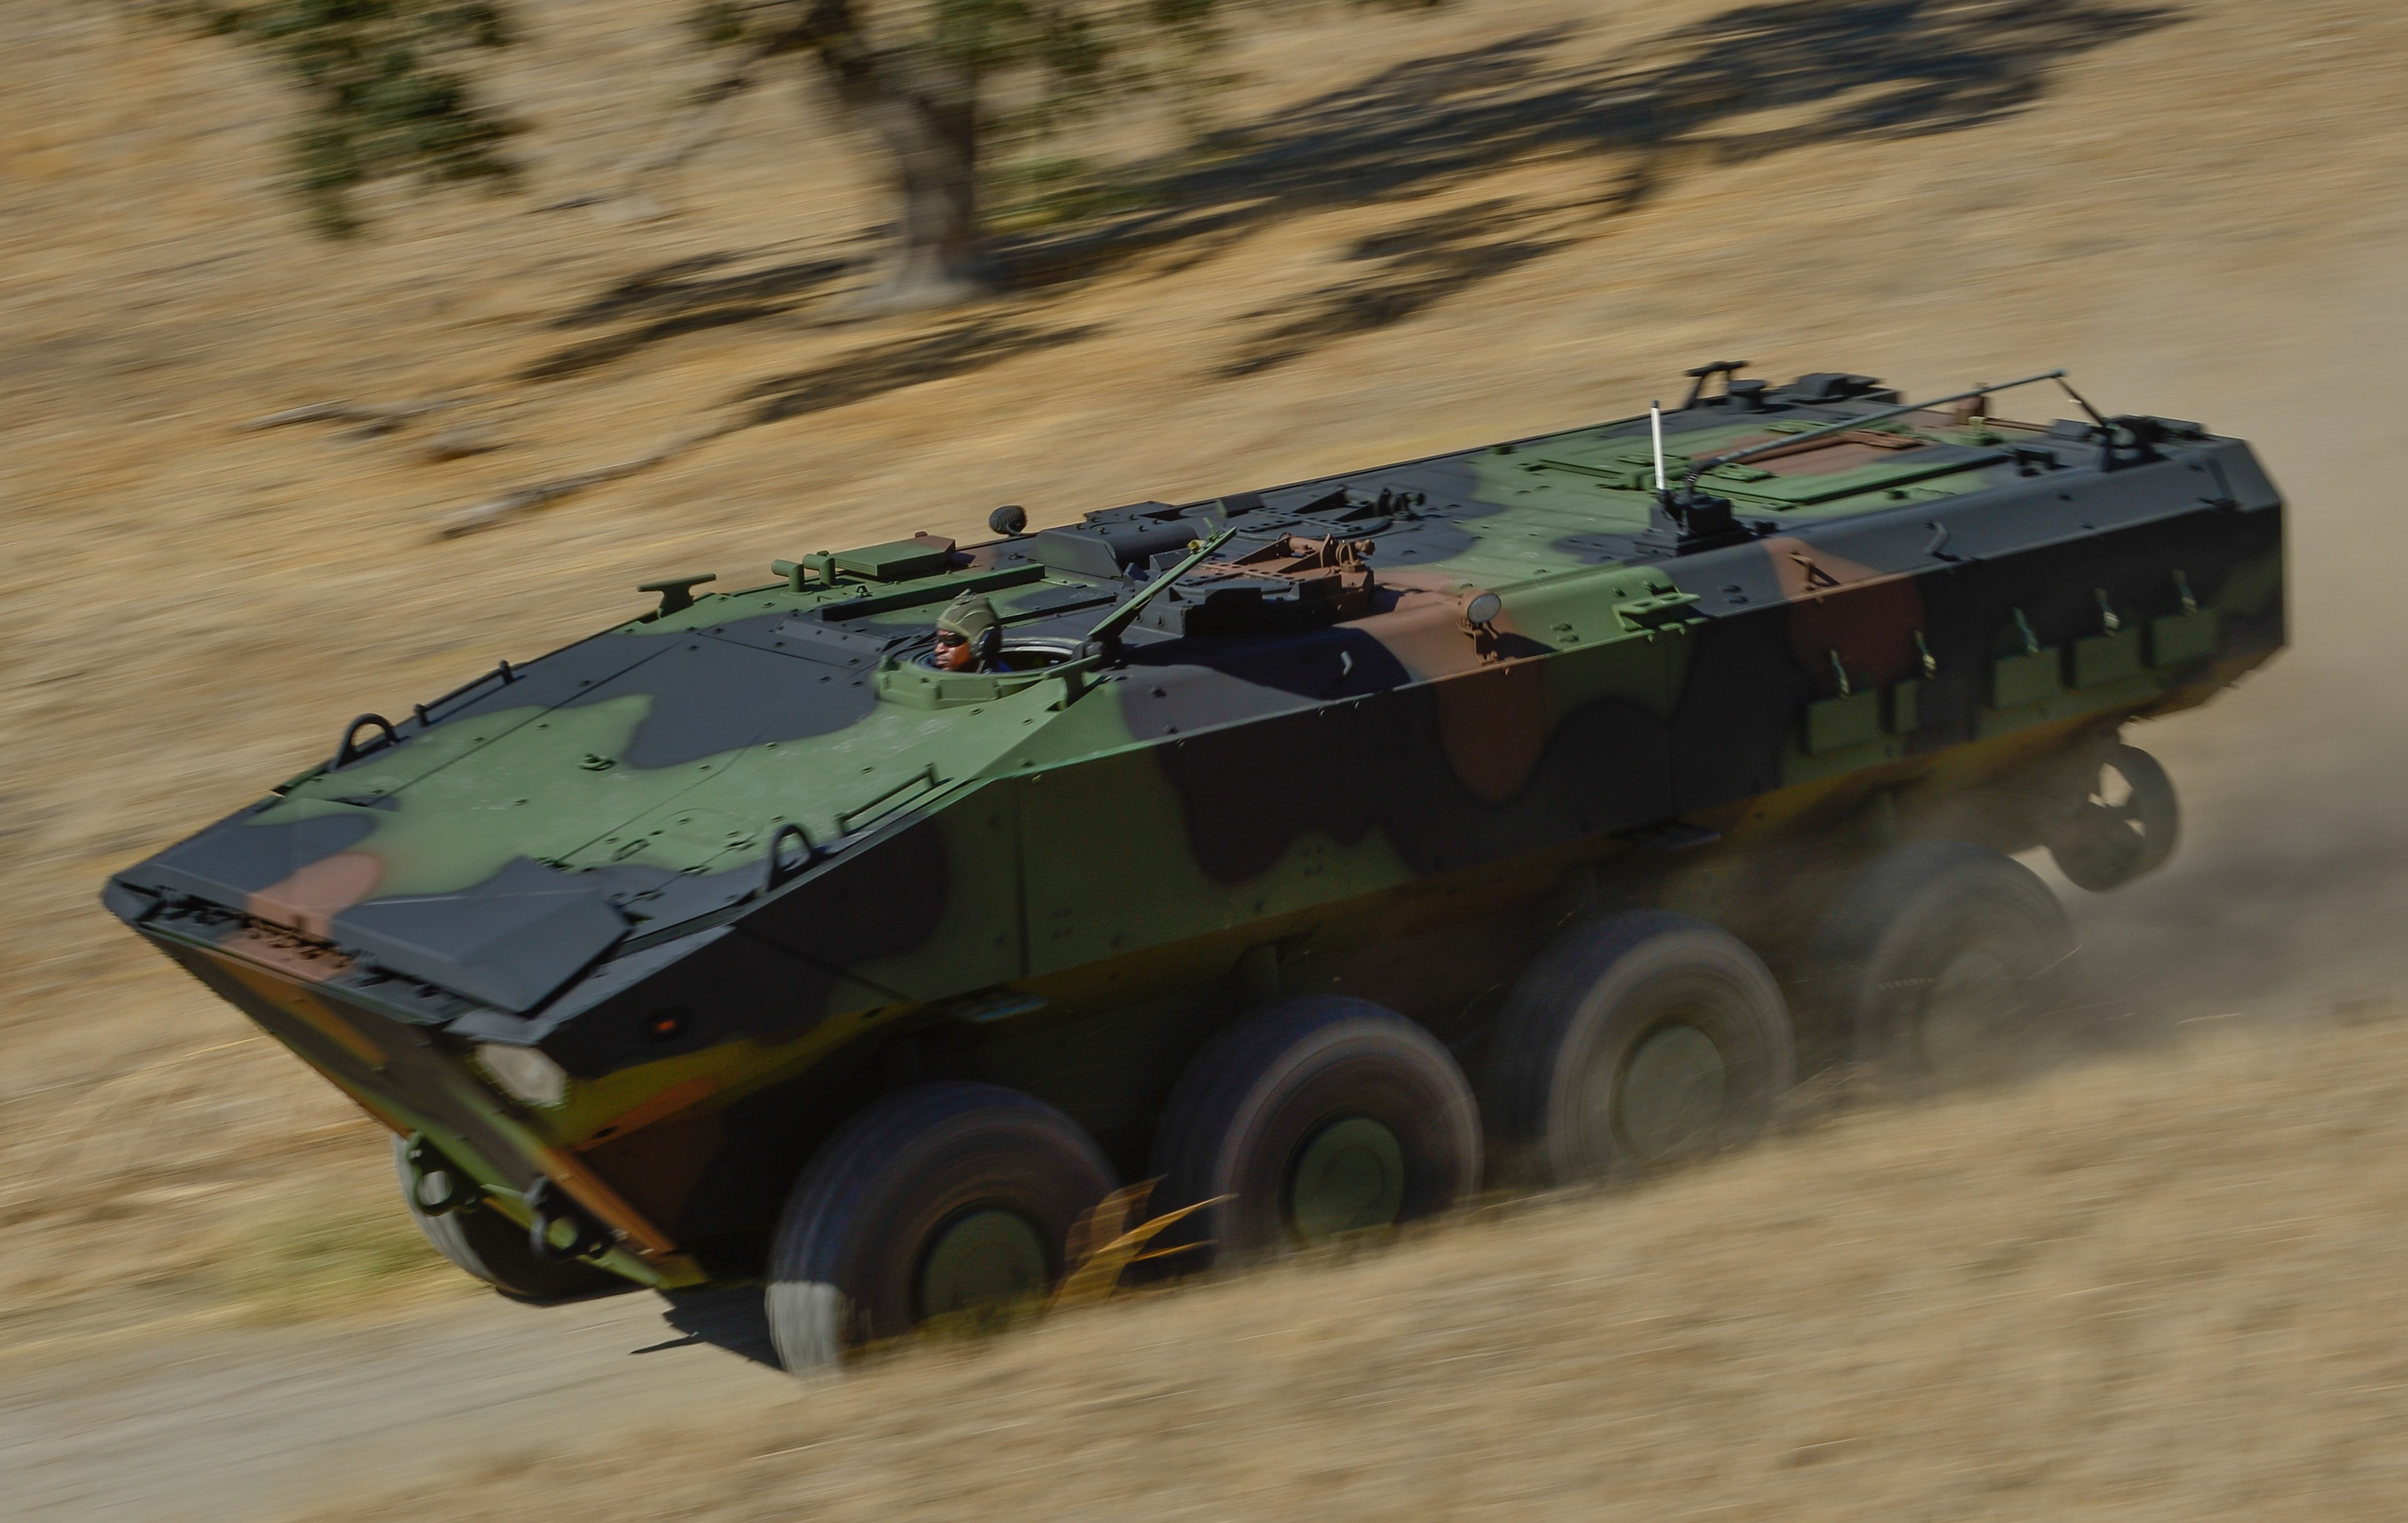 BAE Systems receives $140,3 million contract for 30 USMC ACV 1.1